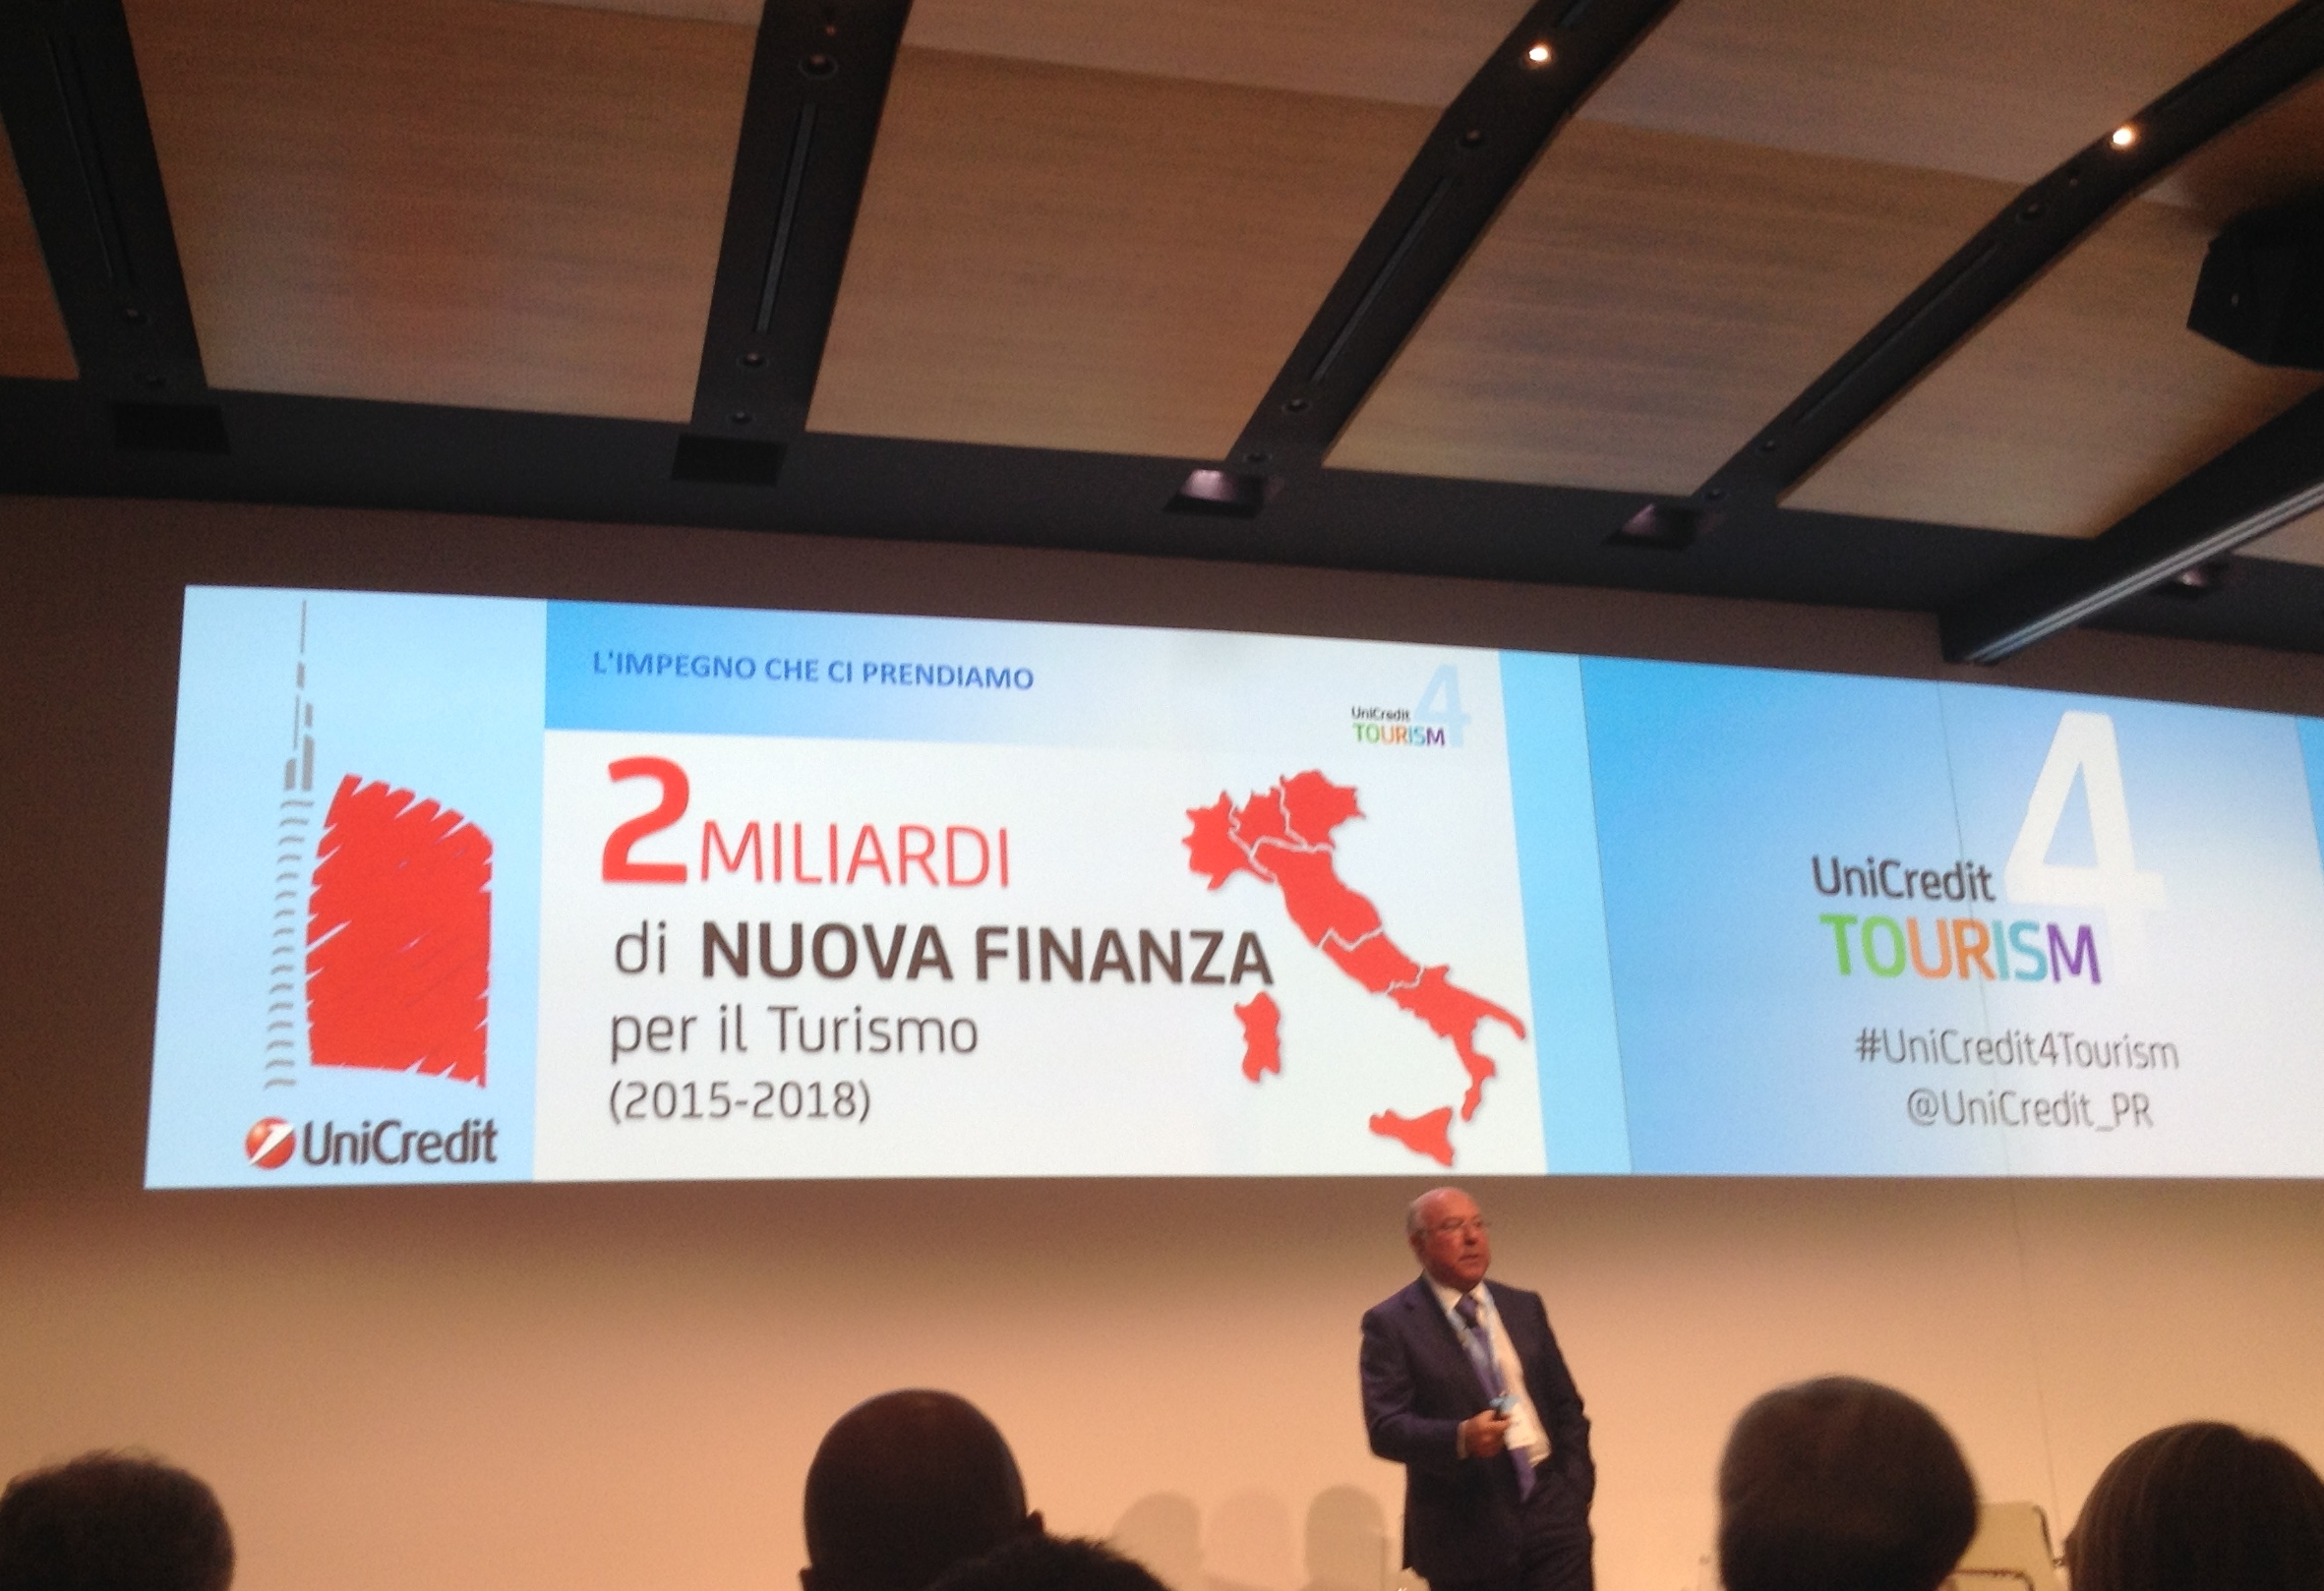 Unicredit for tourism